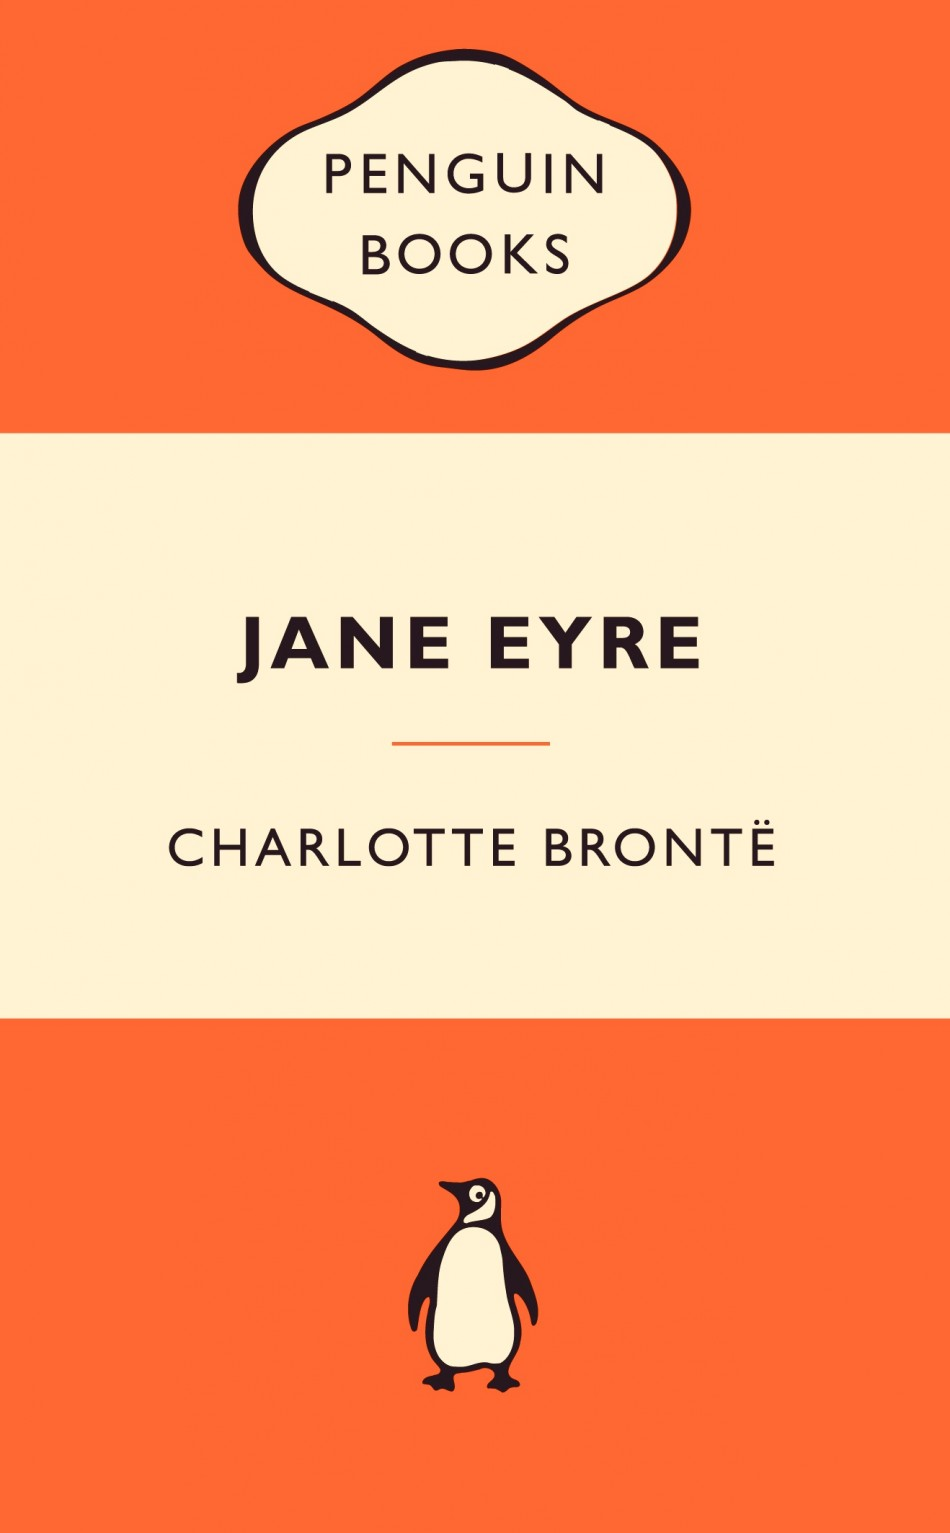 """an analysis of the romance novel jane eyre by charlotte bronte Charlotte brontë's acclaimed novel jane eyre is a staple to classic british   while jane eyre is considered a gothic romance novel, brontë tackles  friend,  helen burns, has """"a beauty of meaning, of movement, of radiance."""